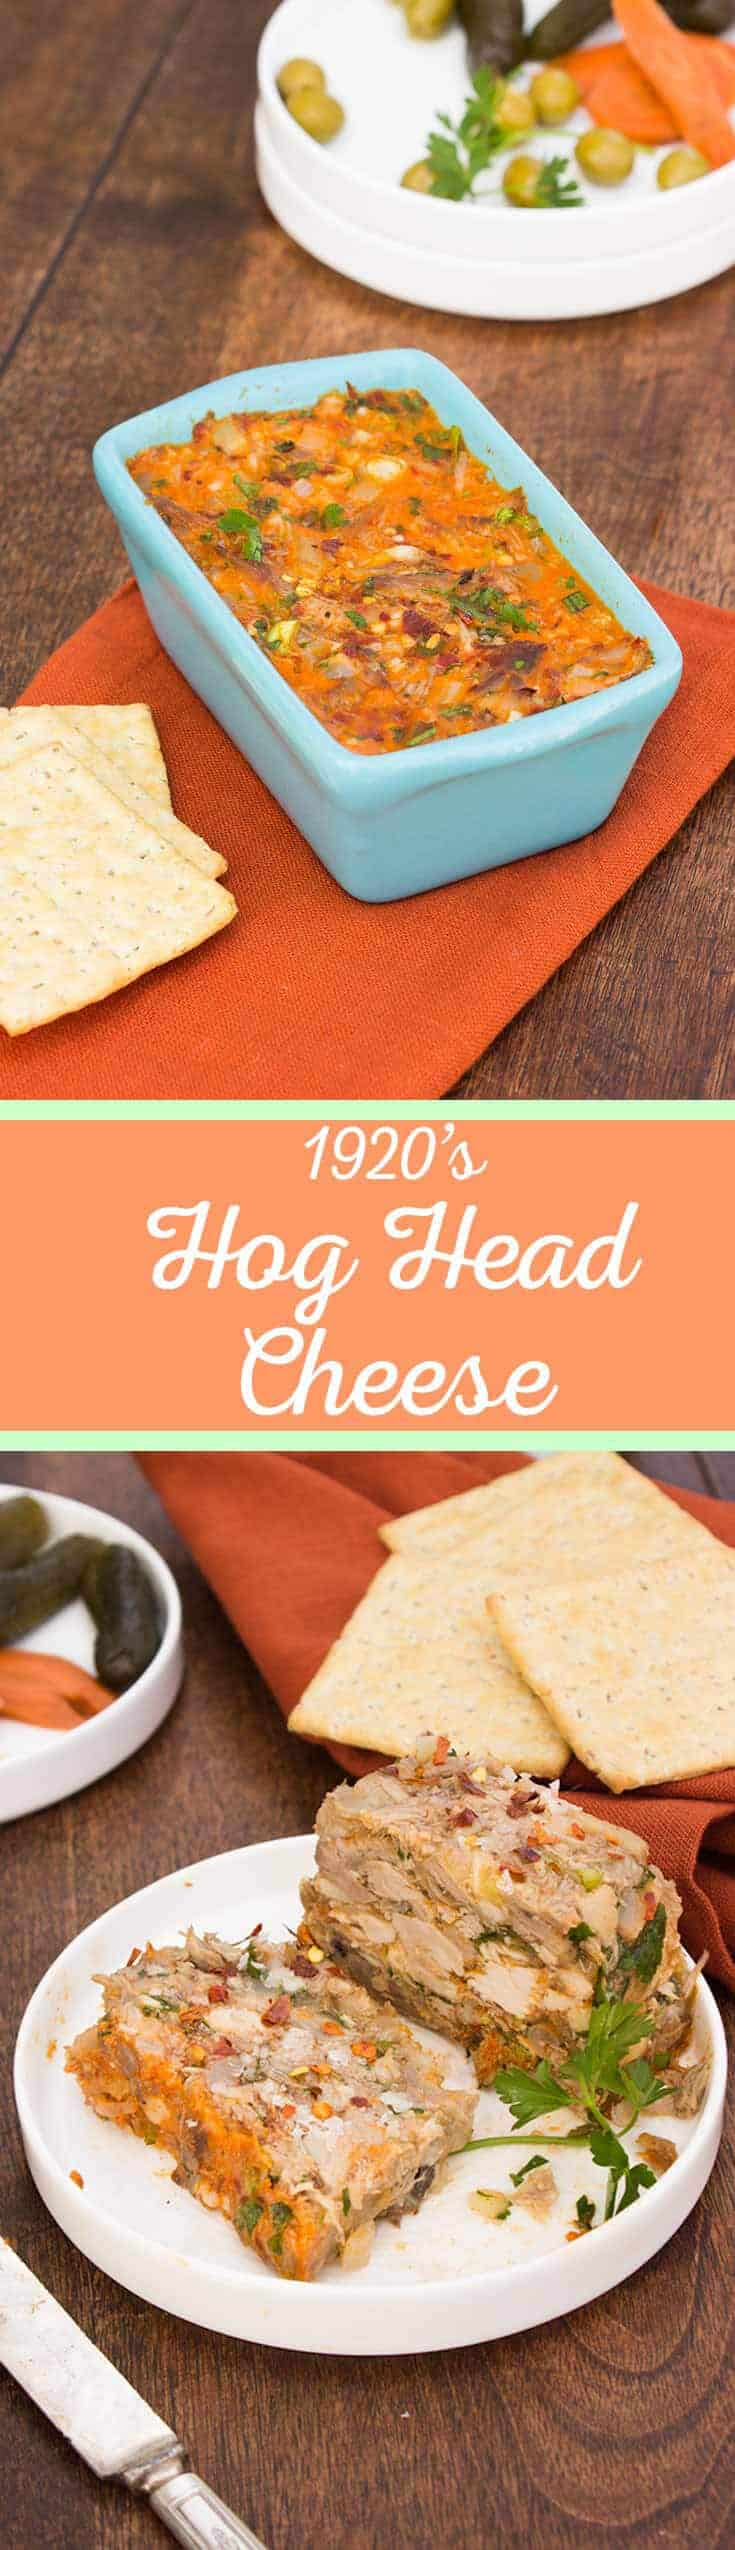 Hog Head Cheese | Cup of Zest